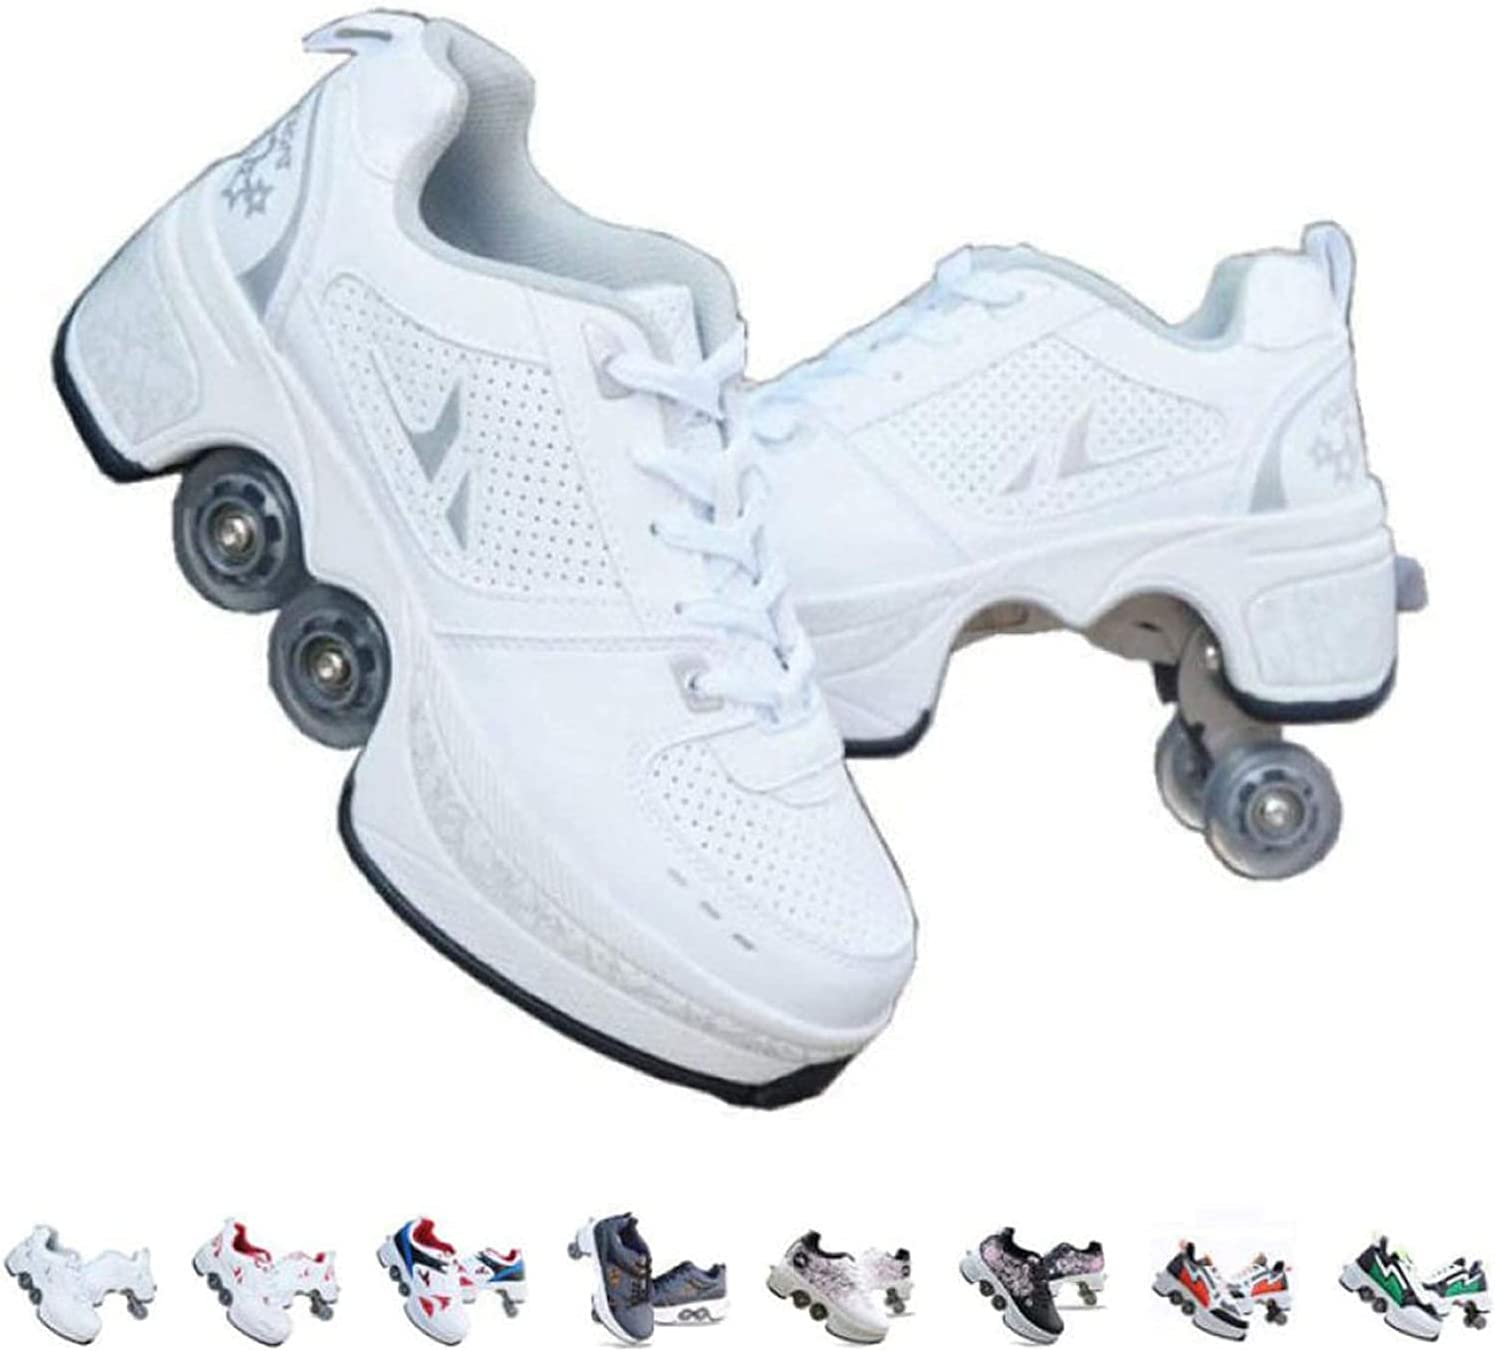 Roller Skates for Women Outdoor Parkour Finally resale Translated start with Gi Shoes Wheels